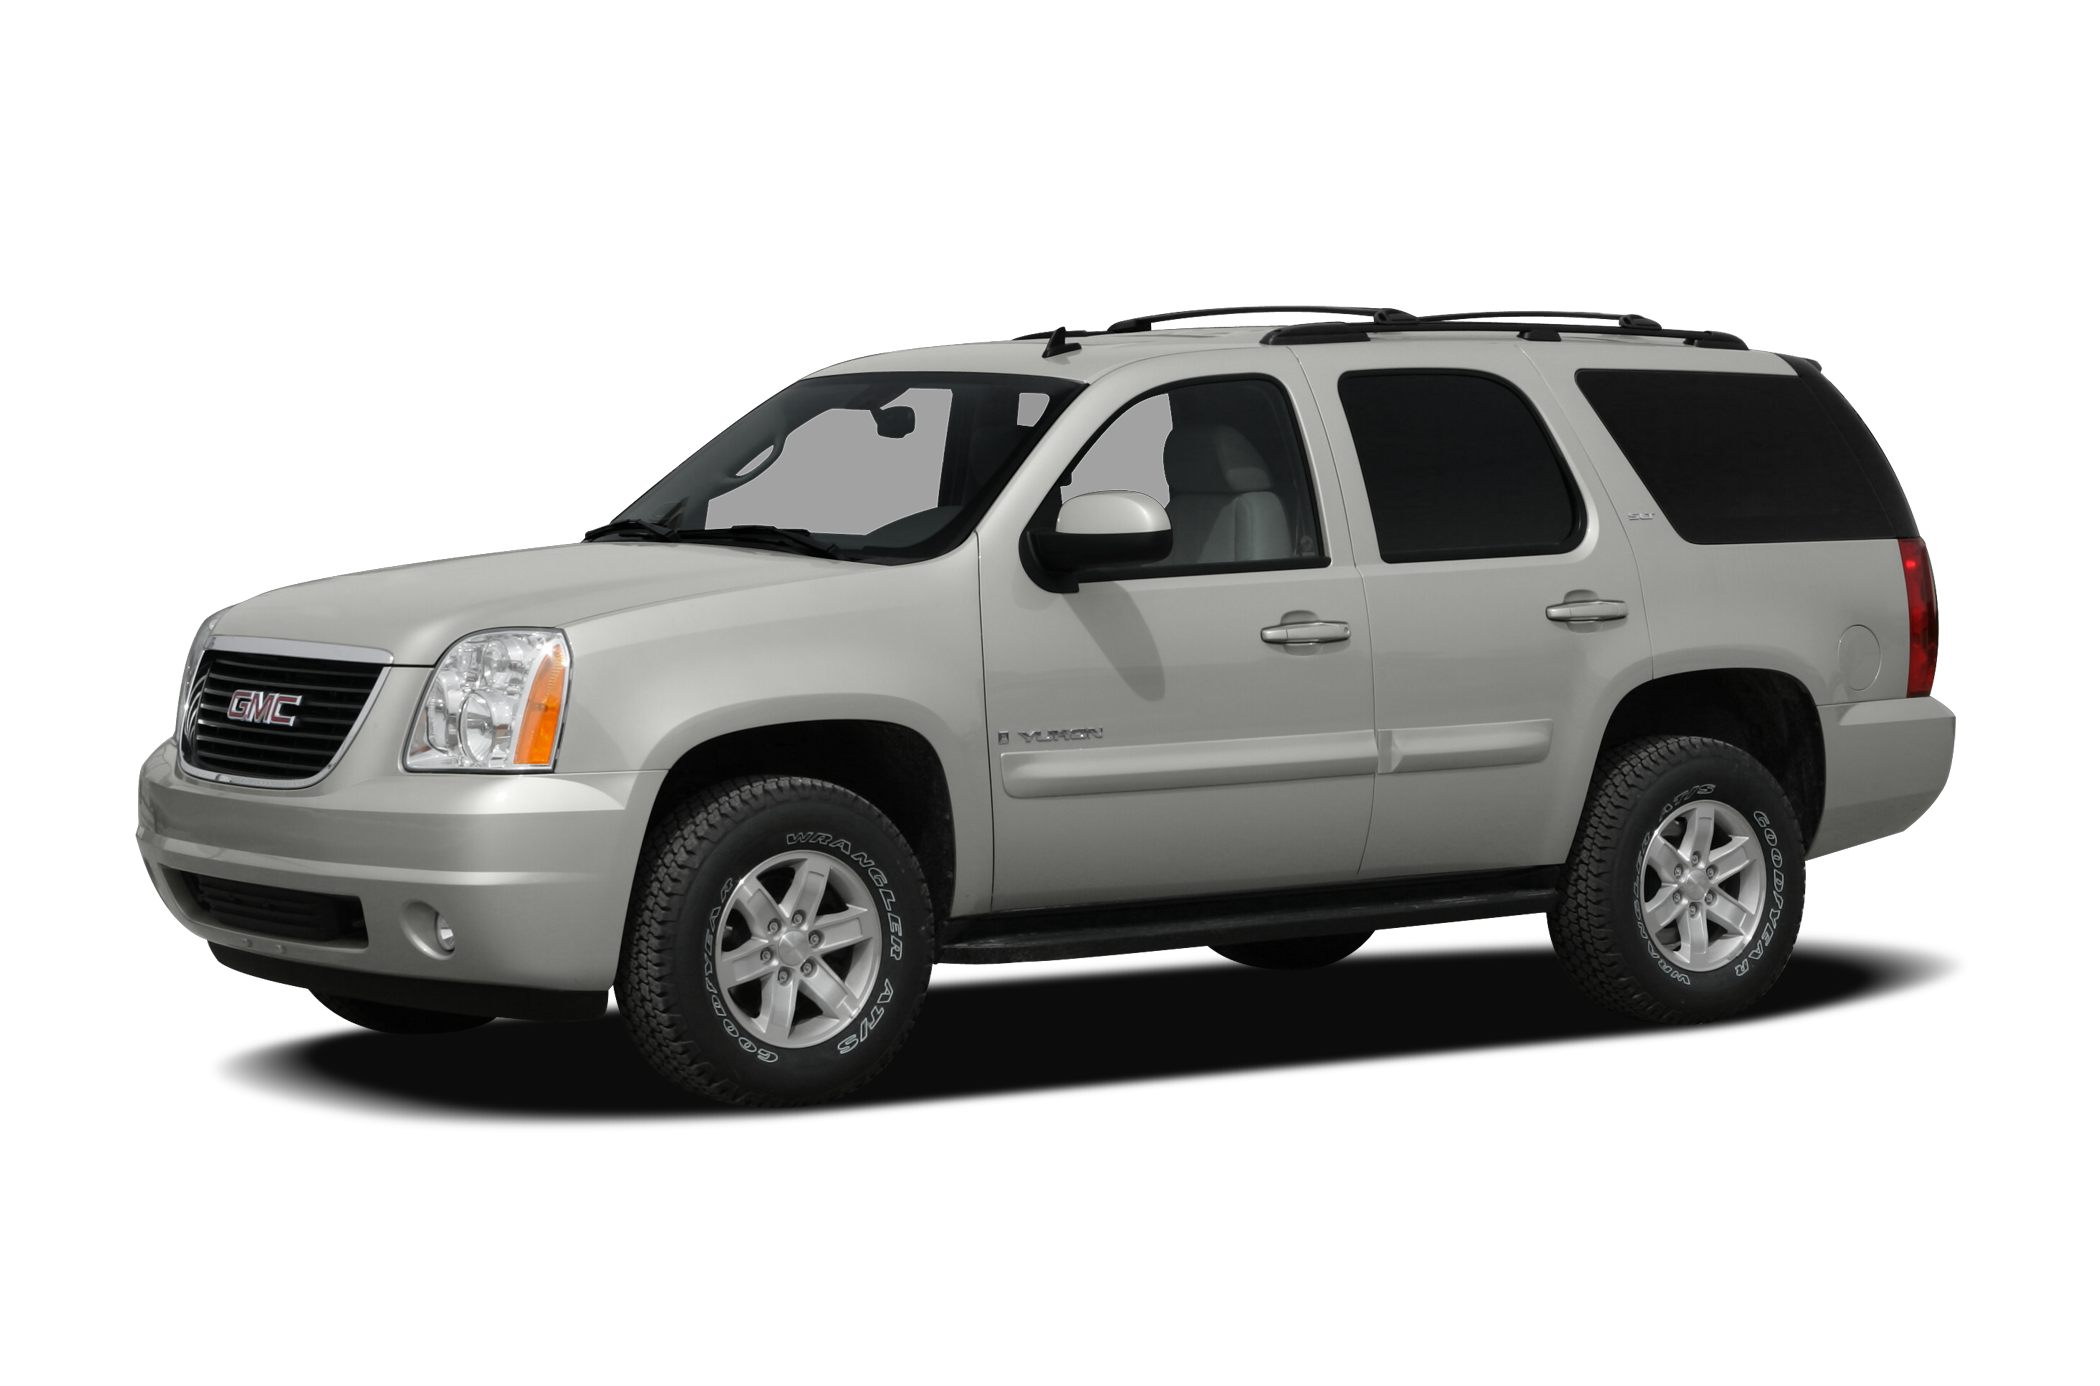 2008 GMC Yukon SLE SUV for sale in Kalispell for $25,997 with 87,155 miles